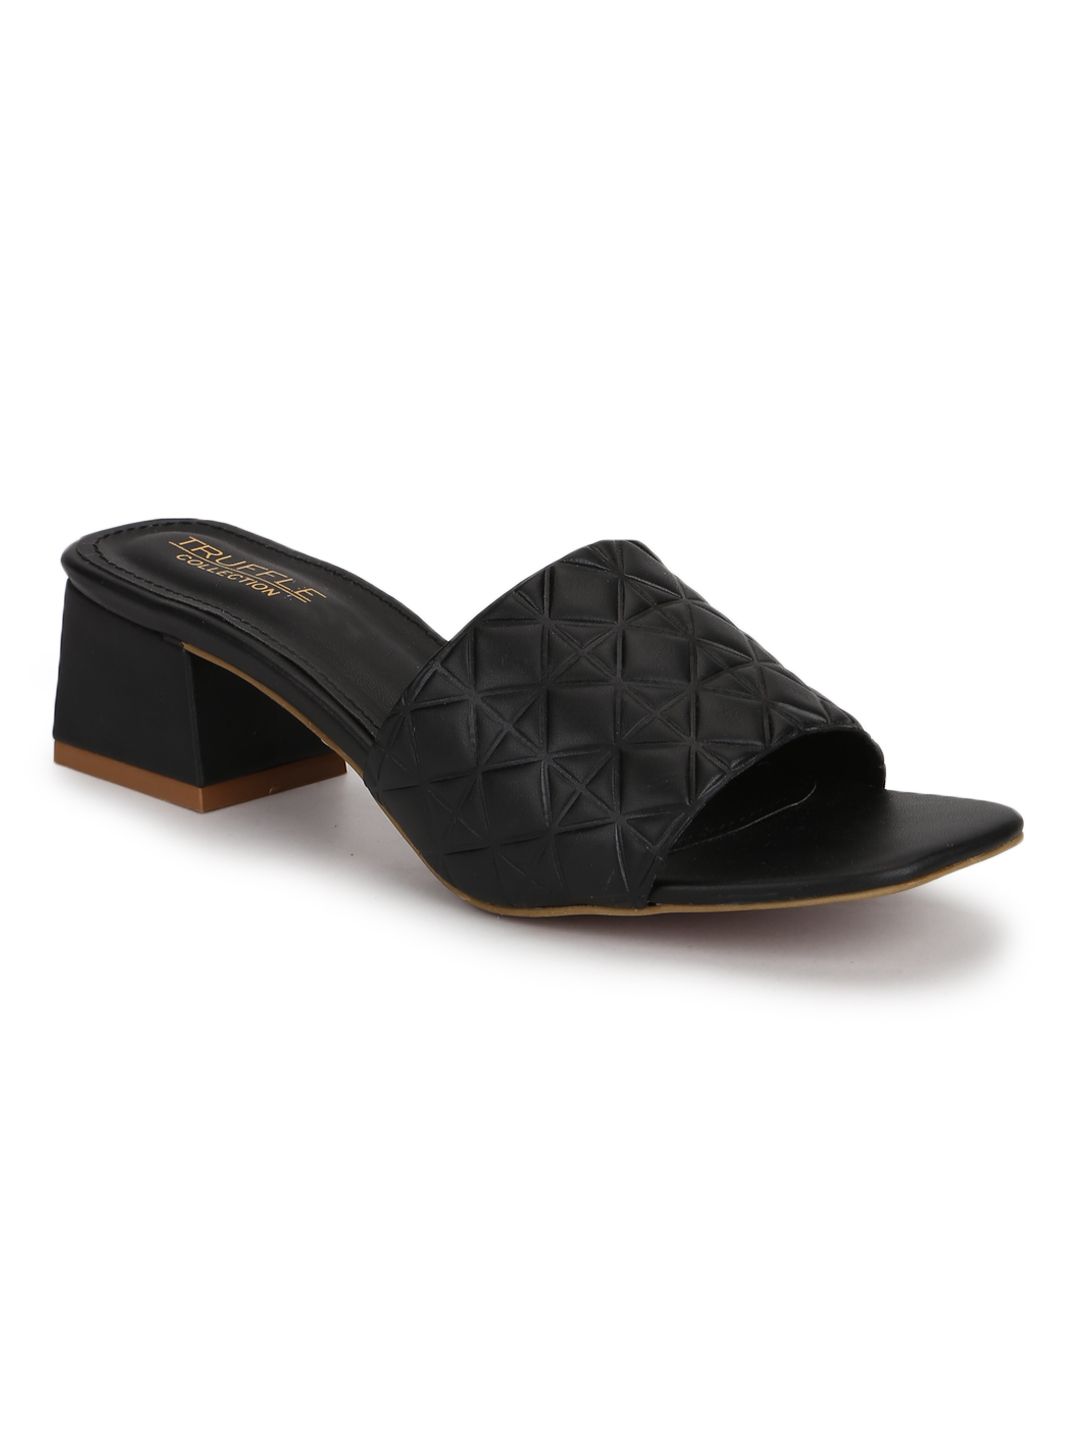 Truffle Collection | Truffle Collection Black PU Textured Block Heel Sandals